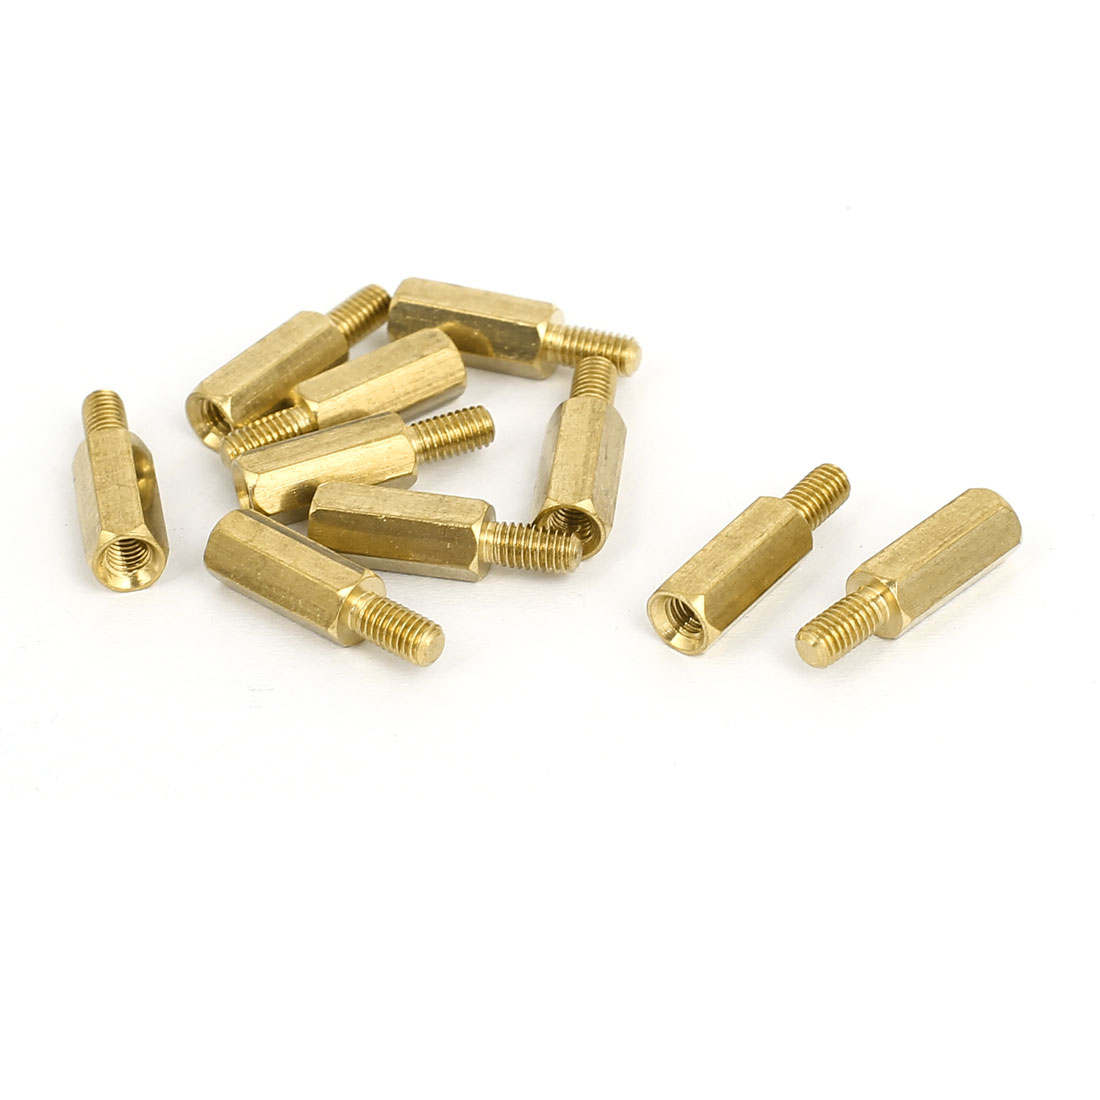 M3x11+6mm Male/Female Threaded Brass Hex Tapped Hexagonal Spacer Standoff Pillar 10pcs